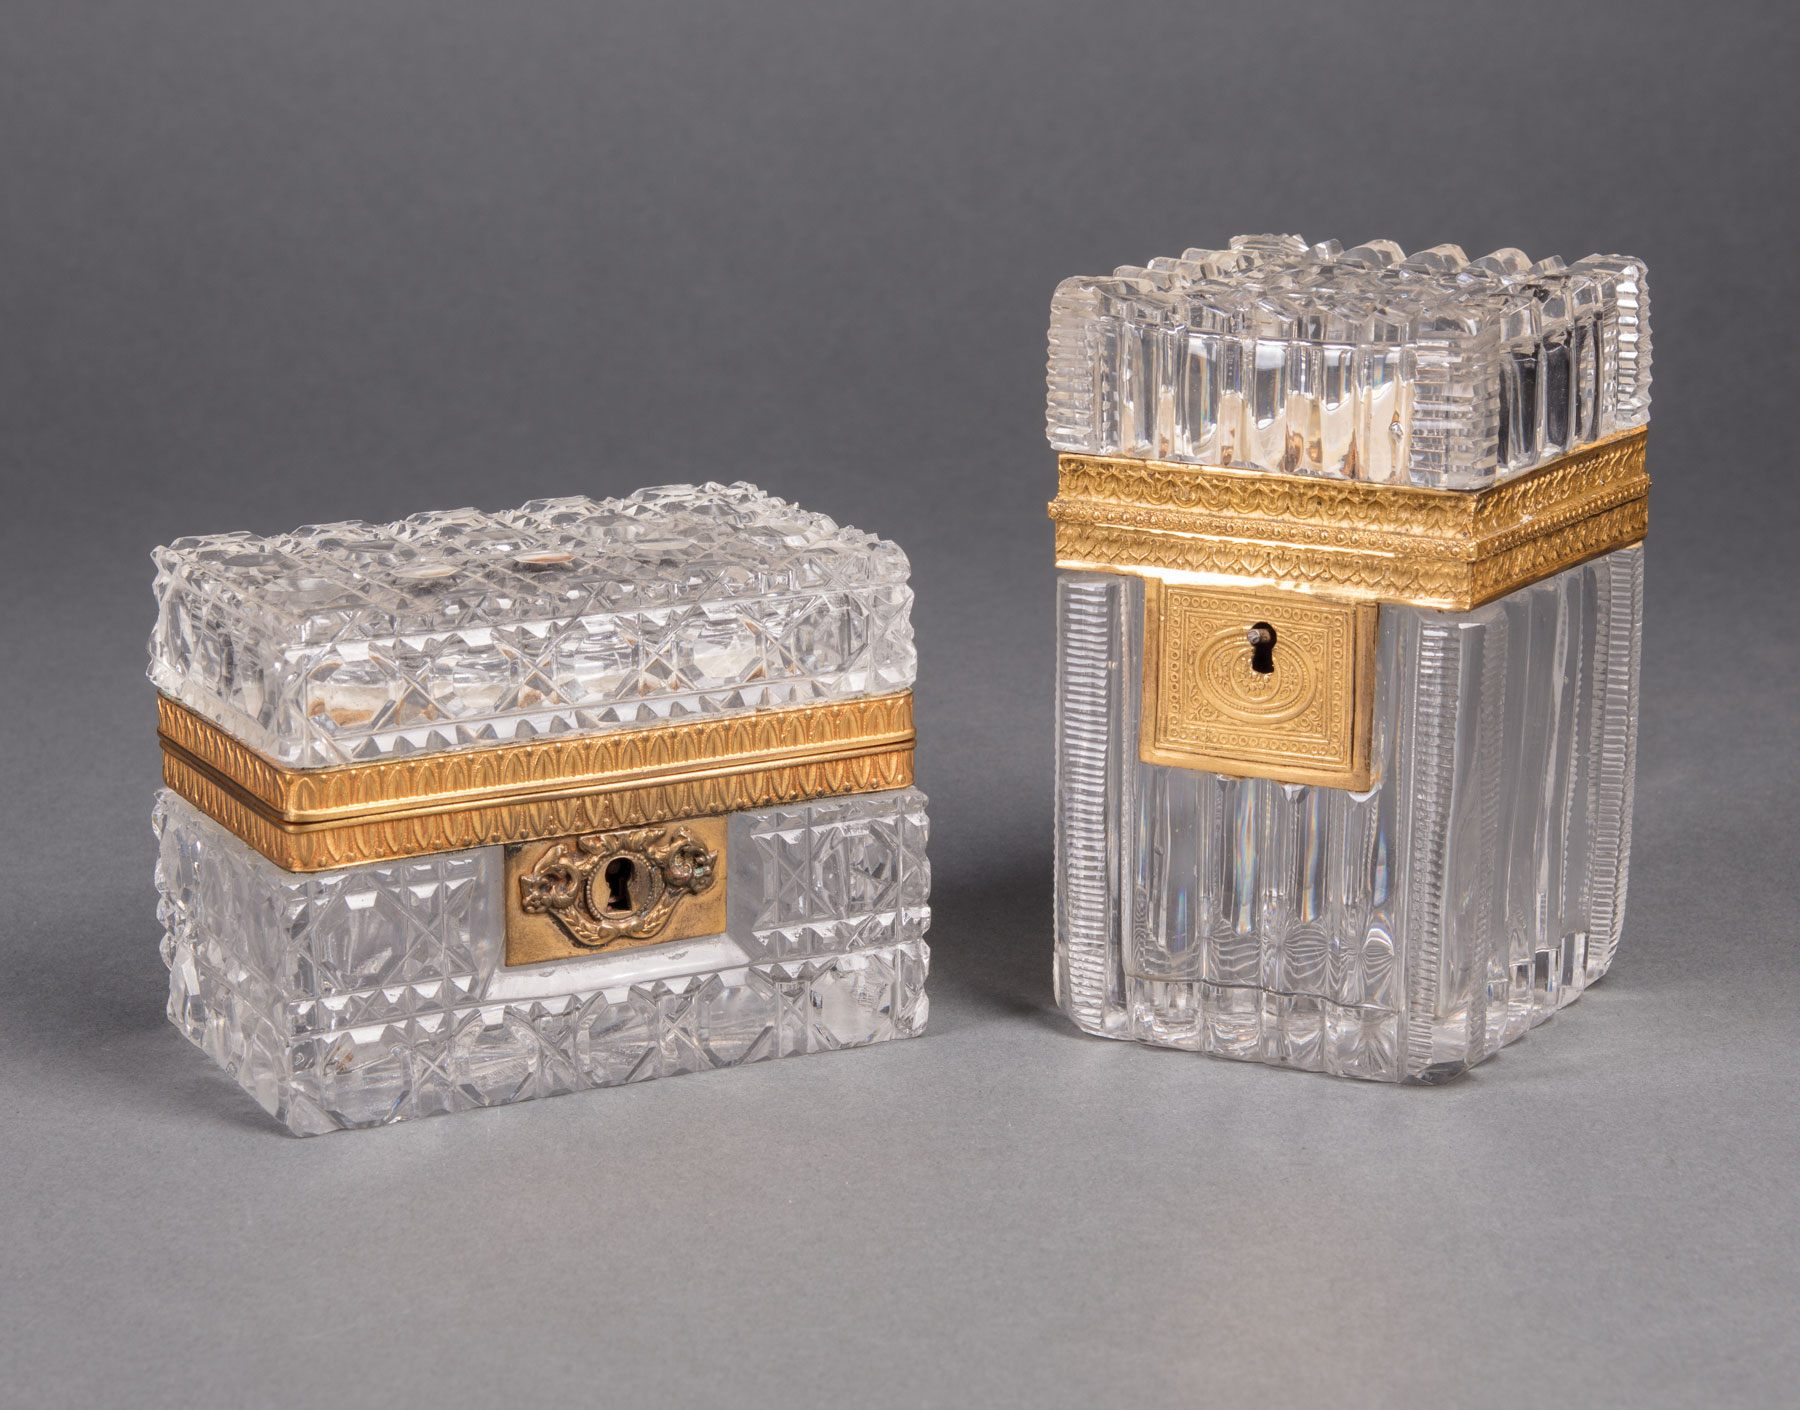 Lot 726 - Two Antique French Bronze-Mounted Cut Crystal Boxes , 19th c., taller h. 4 1/2 in., w. 2 3/4 in., d.